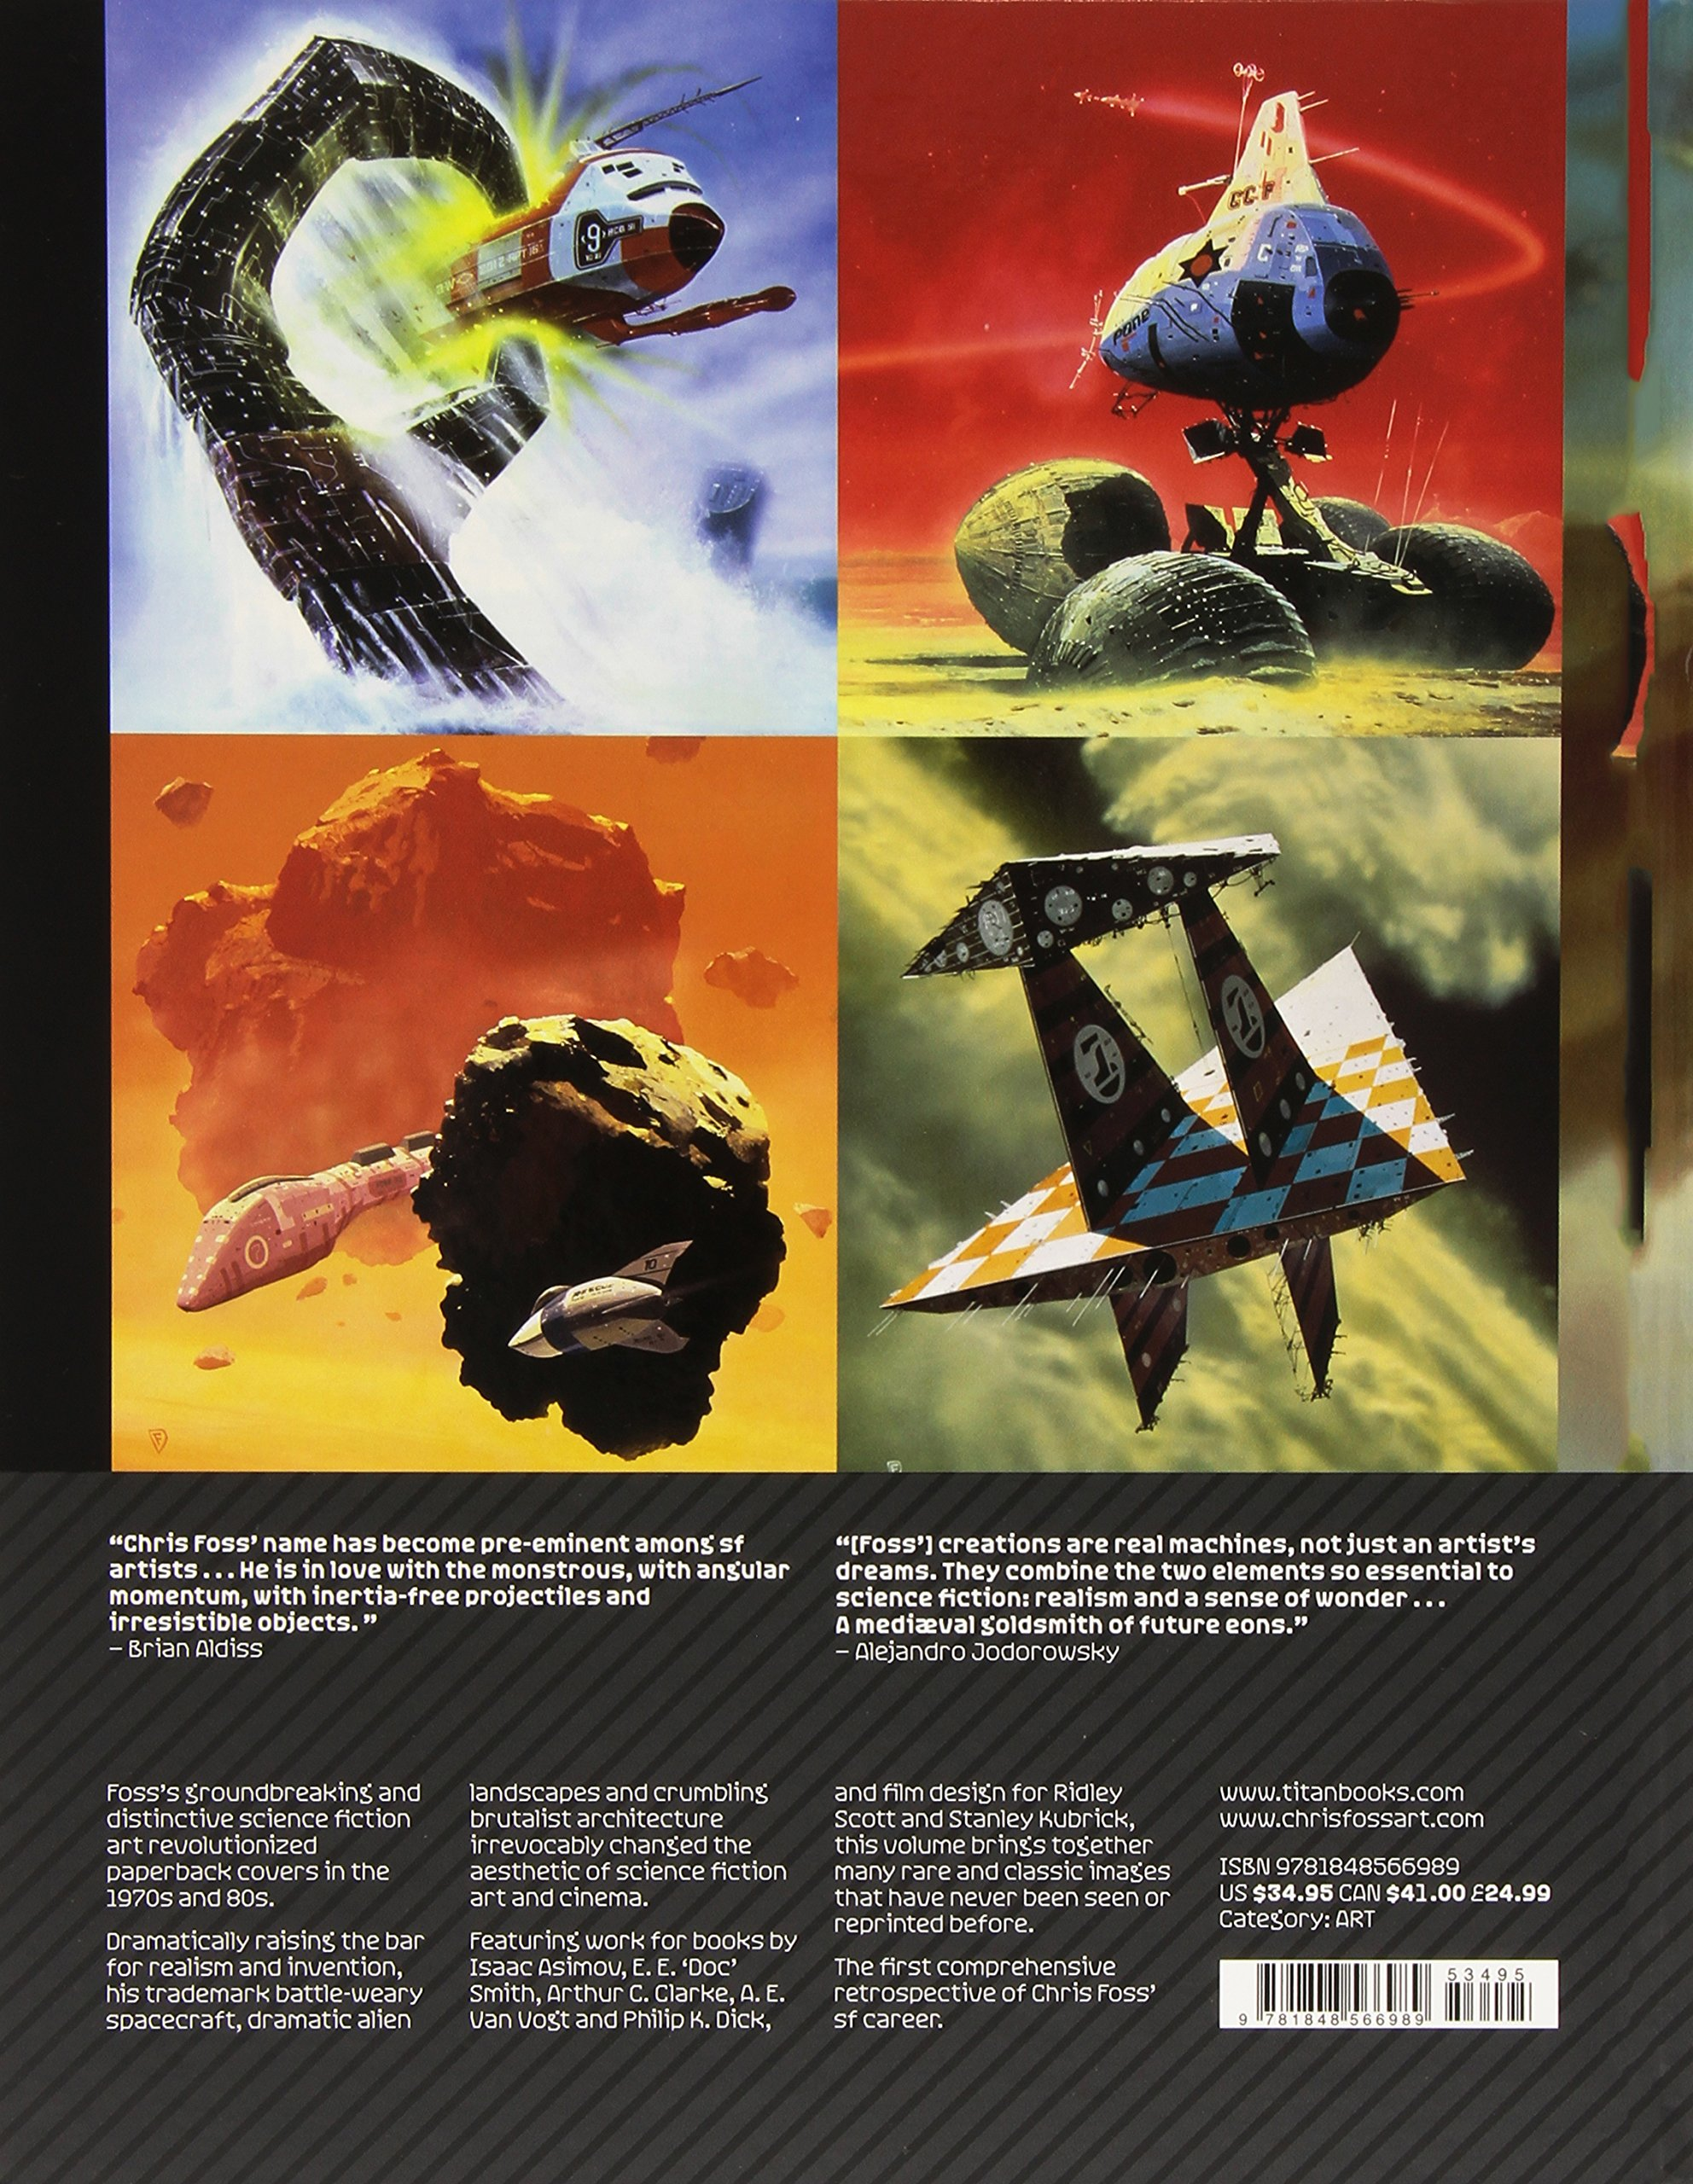 Hardware The Definitive SF Works Of Chris Foss Rian Hughes 9781848566989 Amazon Books